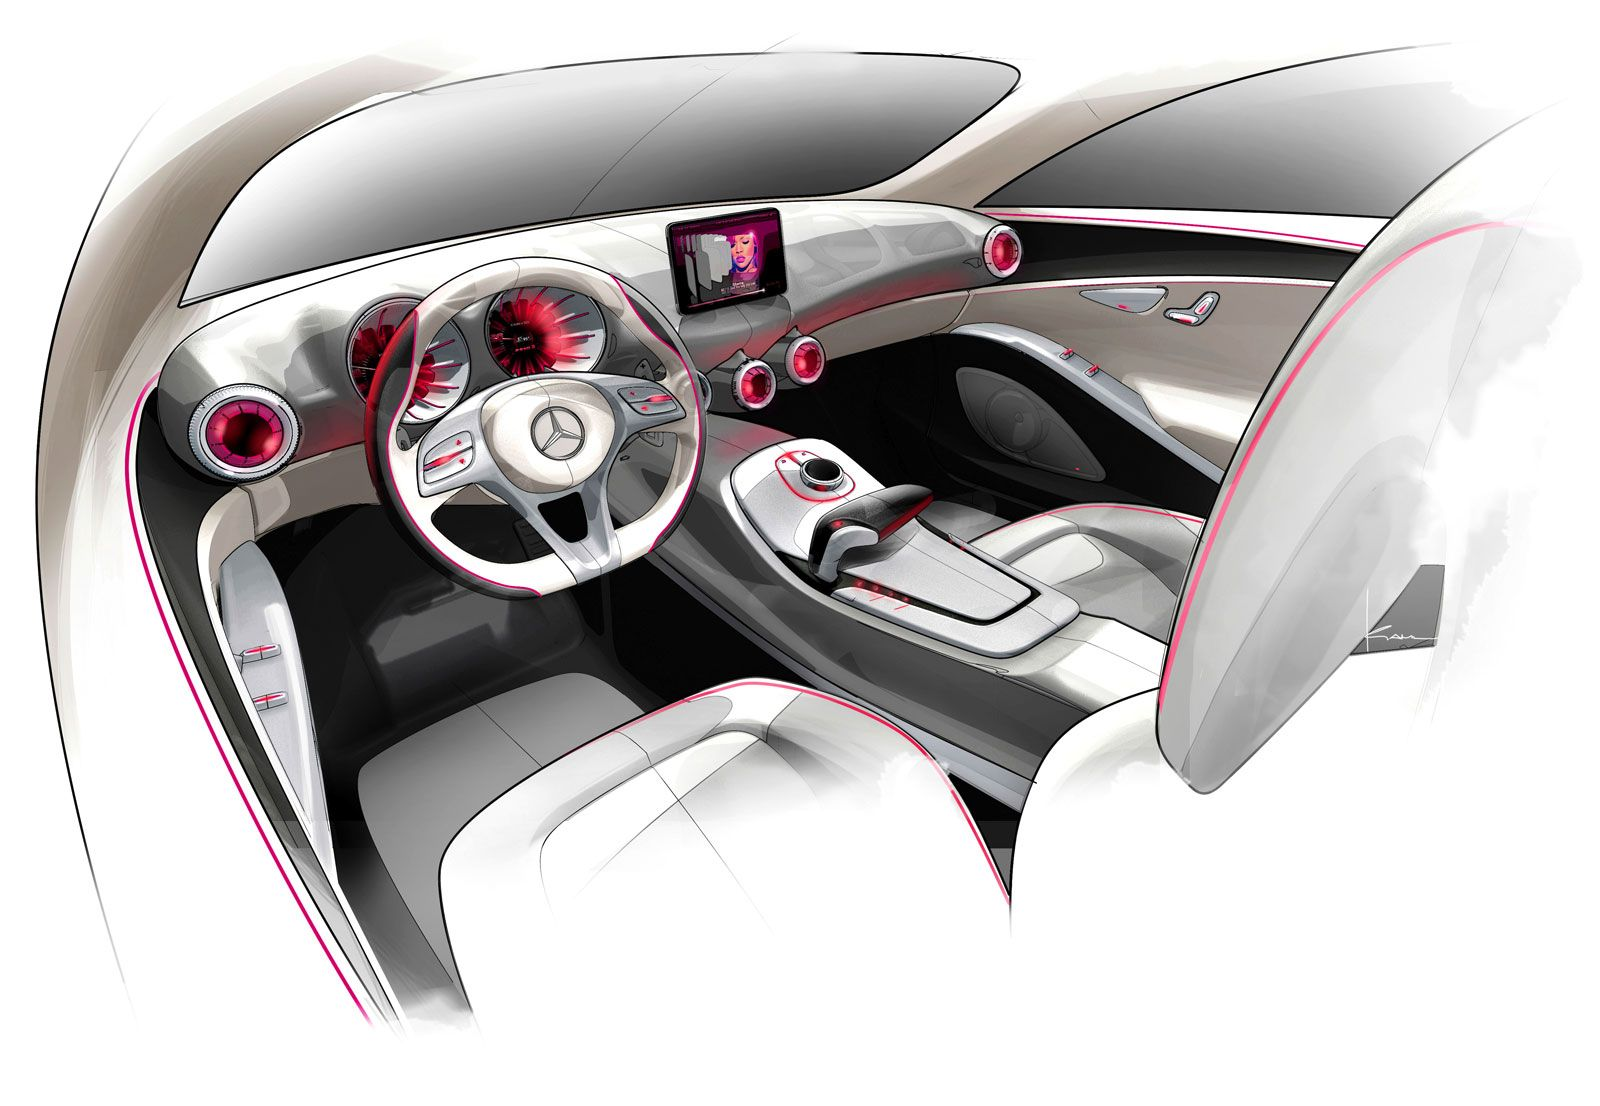 Mercedes Benz Concept A Class Interior Design Sketch 인테리어